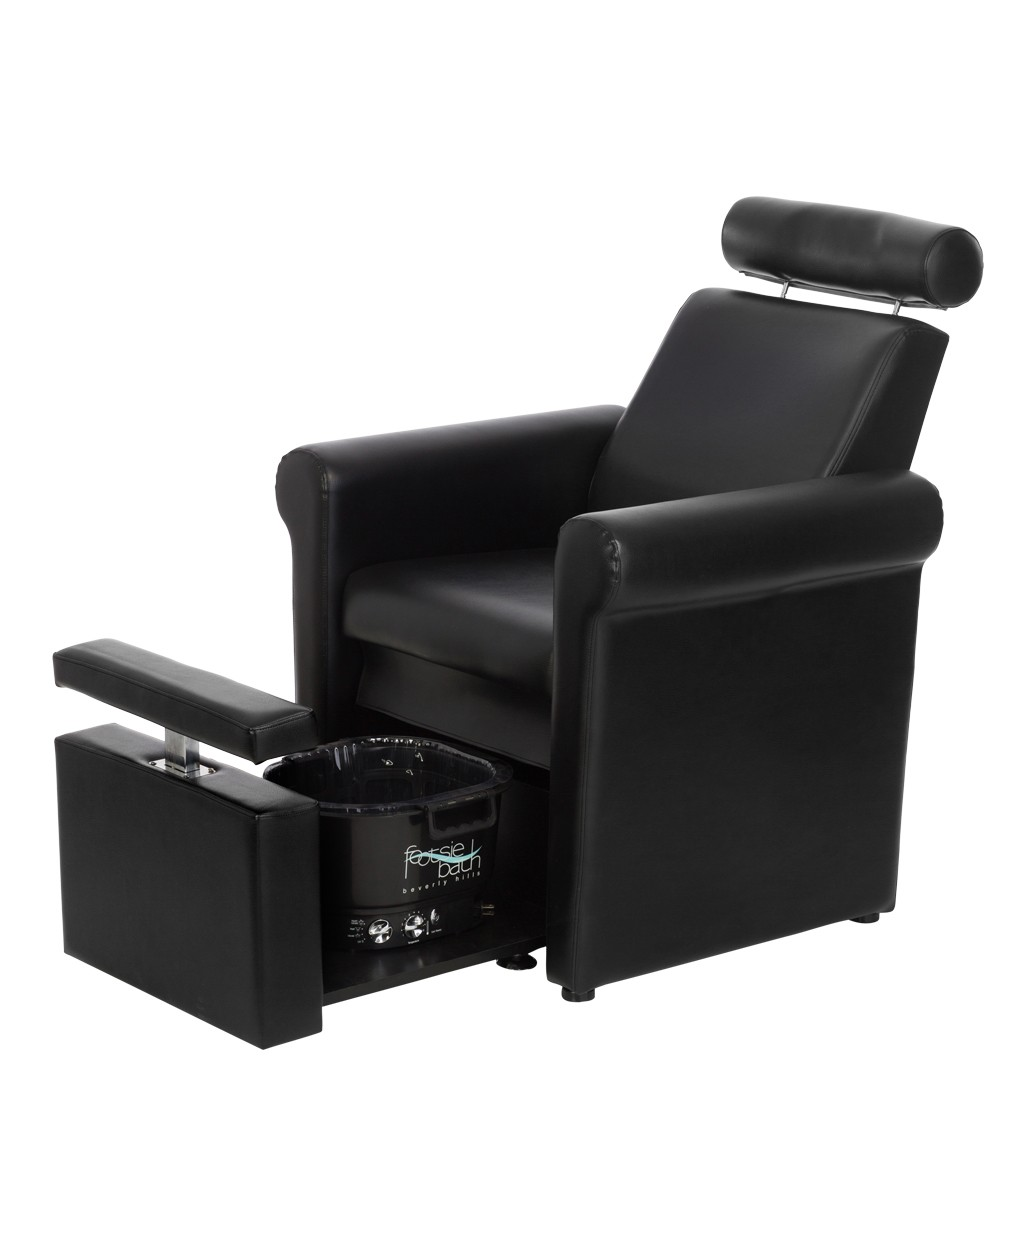 portable pedicure chairs patio chair with ottoman stool footrest mona lisa